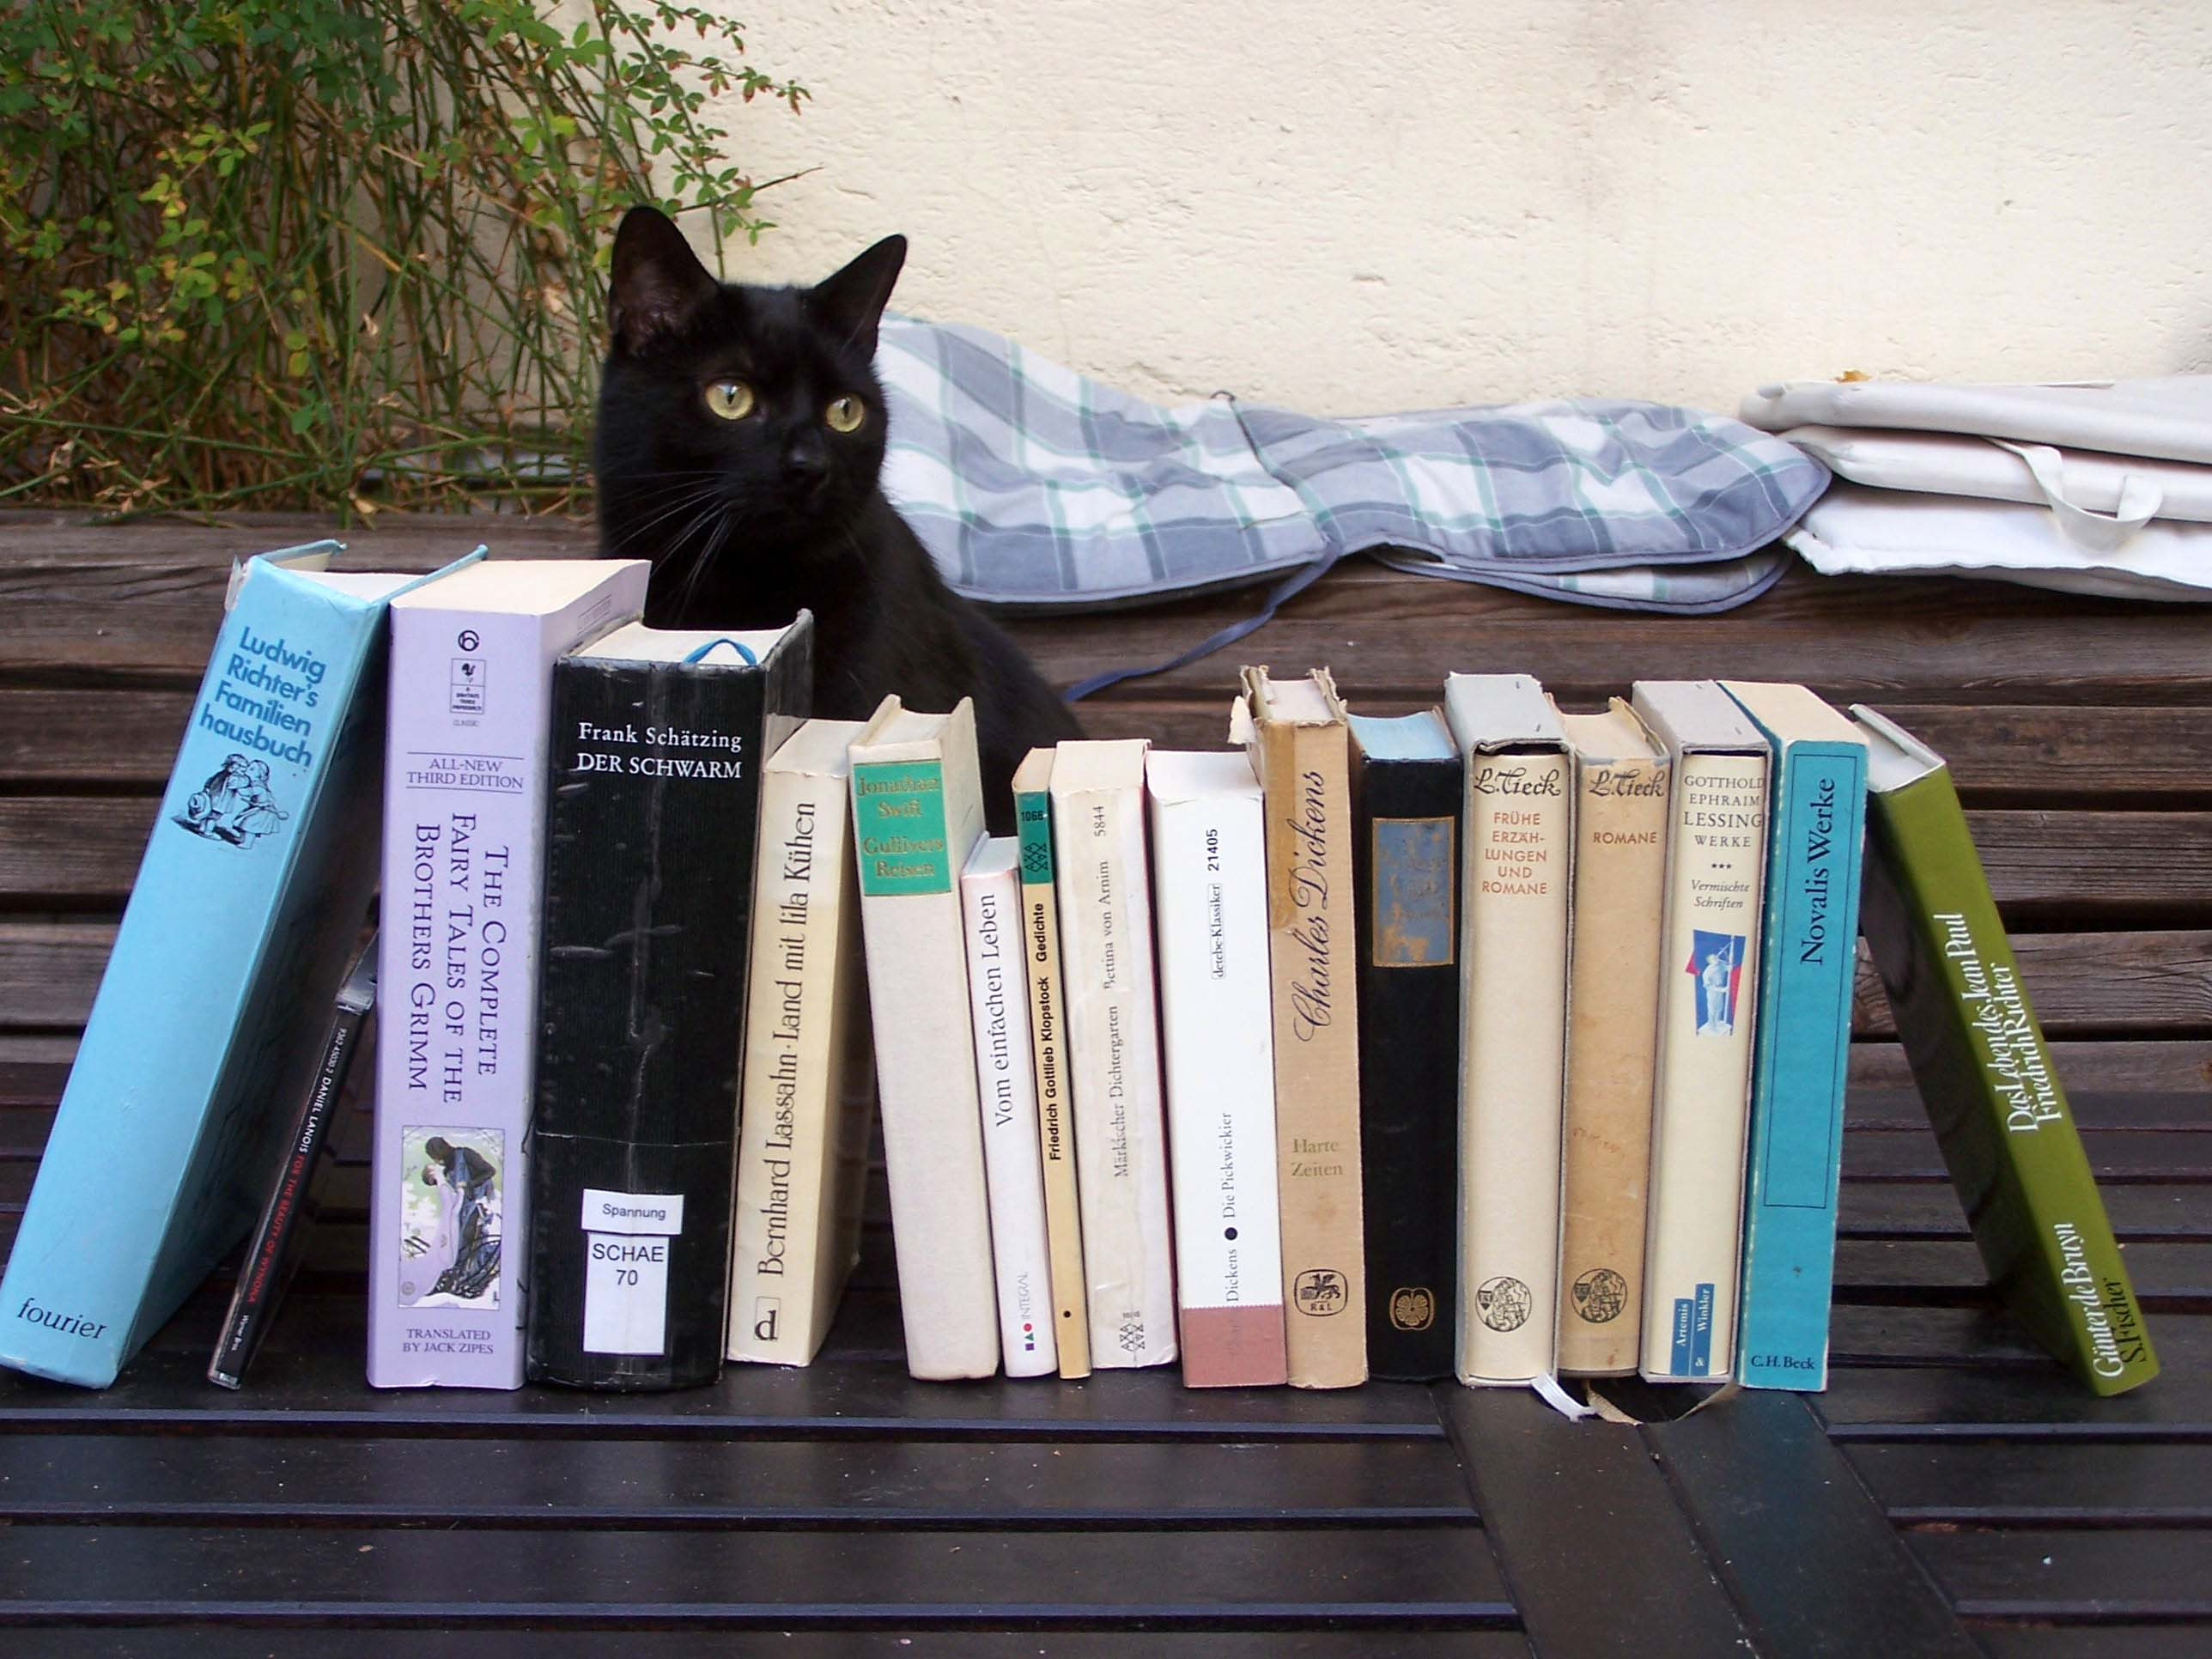 Merlin im Hof. Cats on Books 4, 6. November 2018